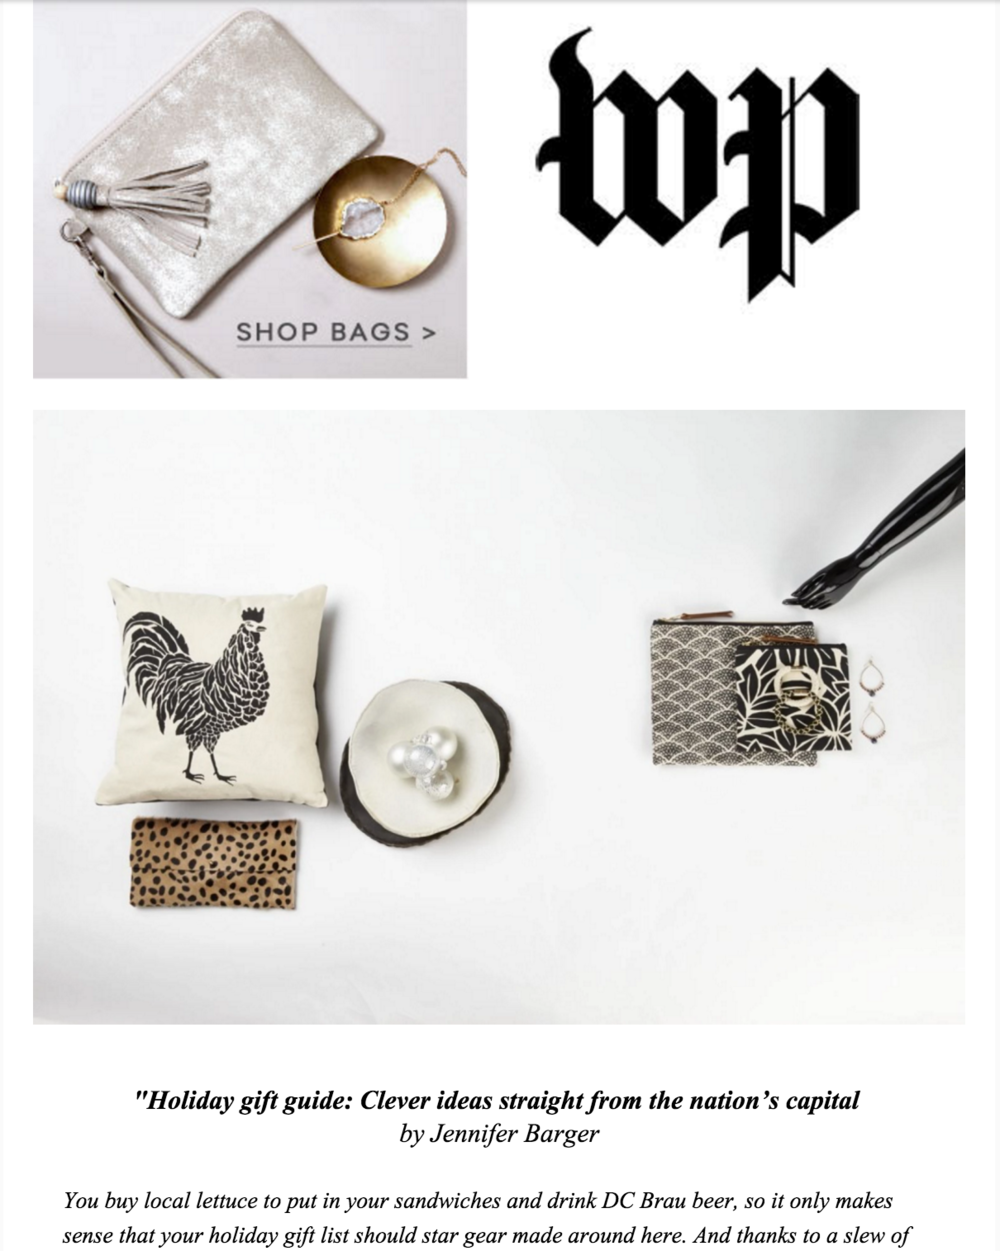 11.21 Washington Post Magazine Holiday Gift Guide // Article by Jennifer Barger | Photos by Greg Post